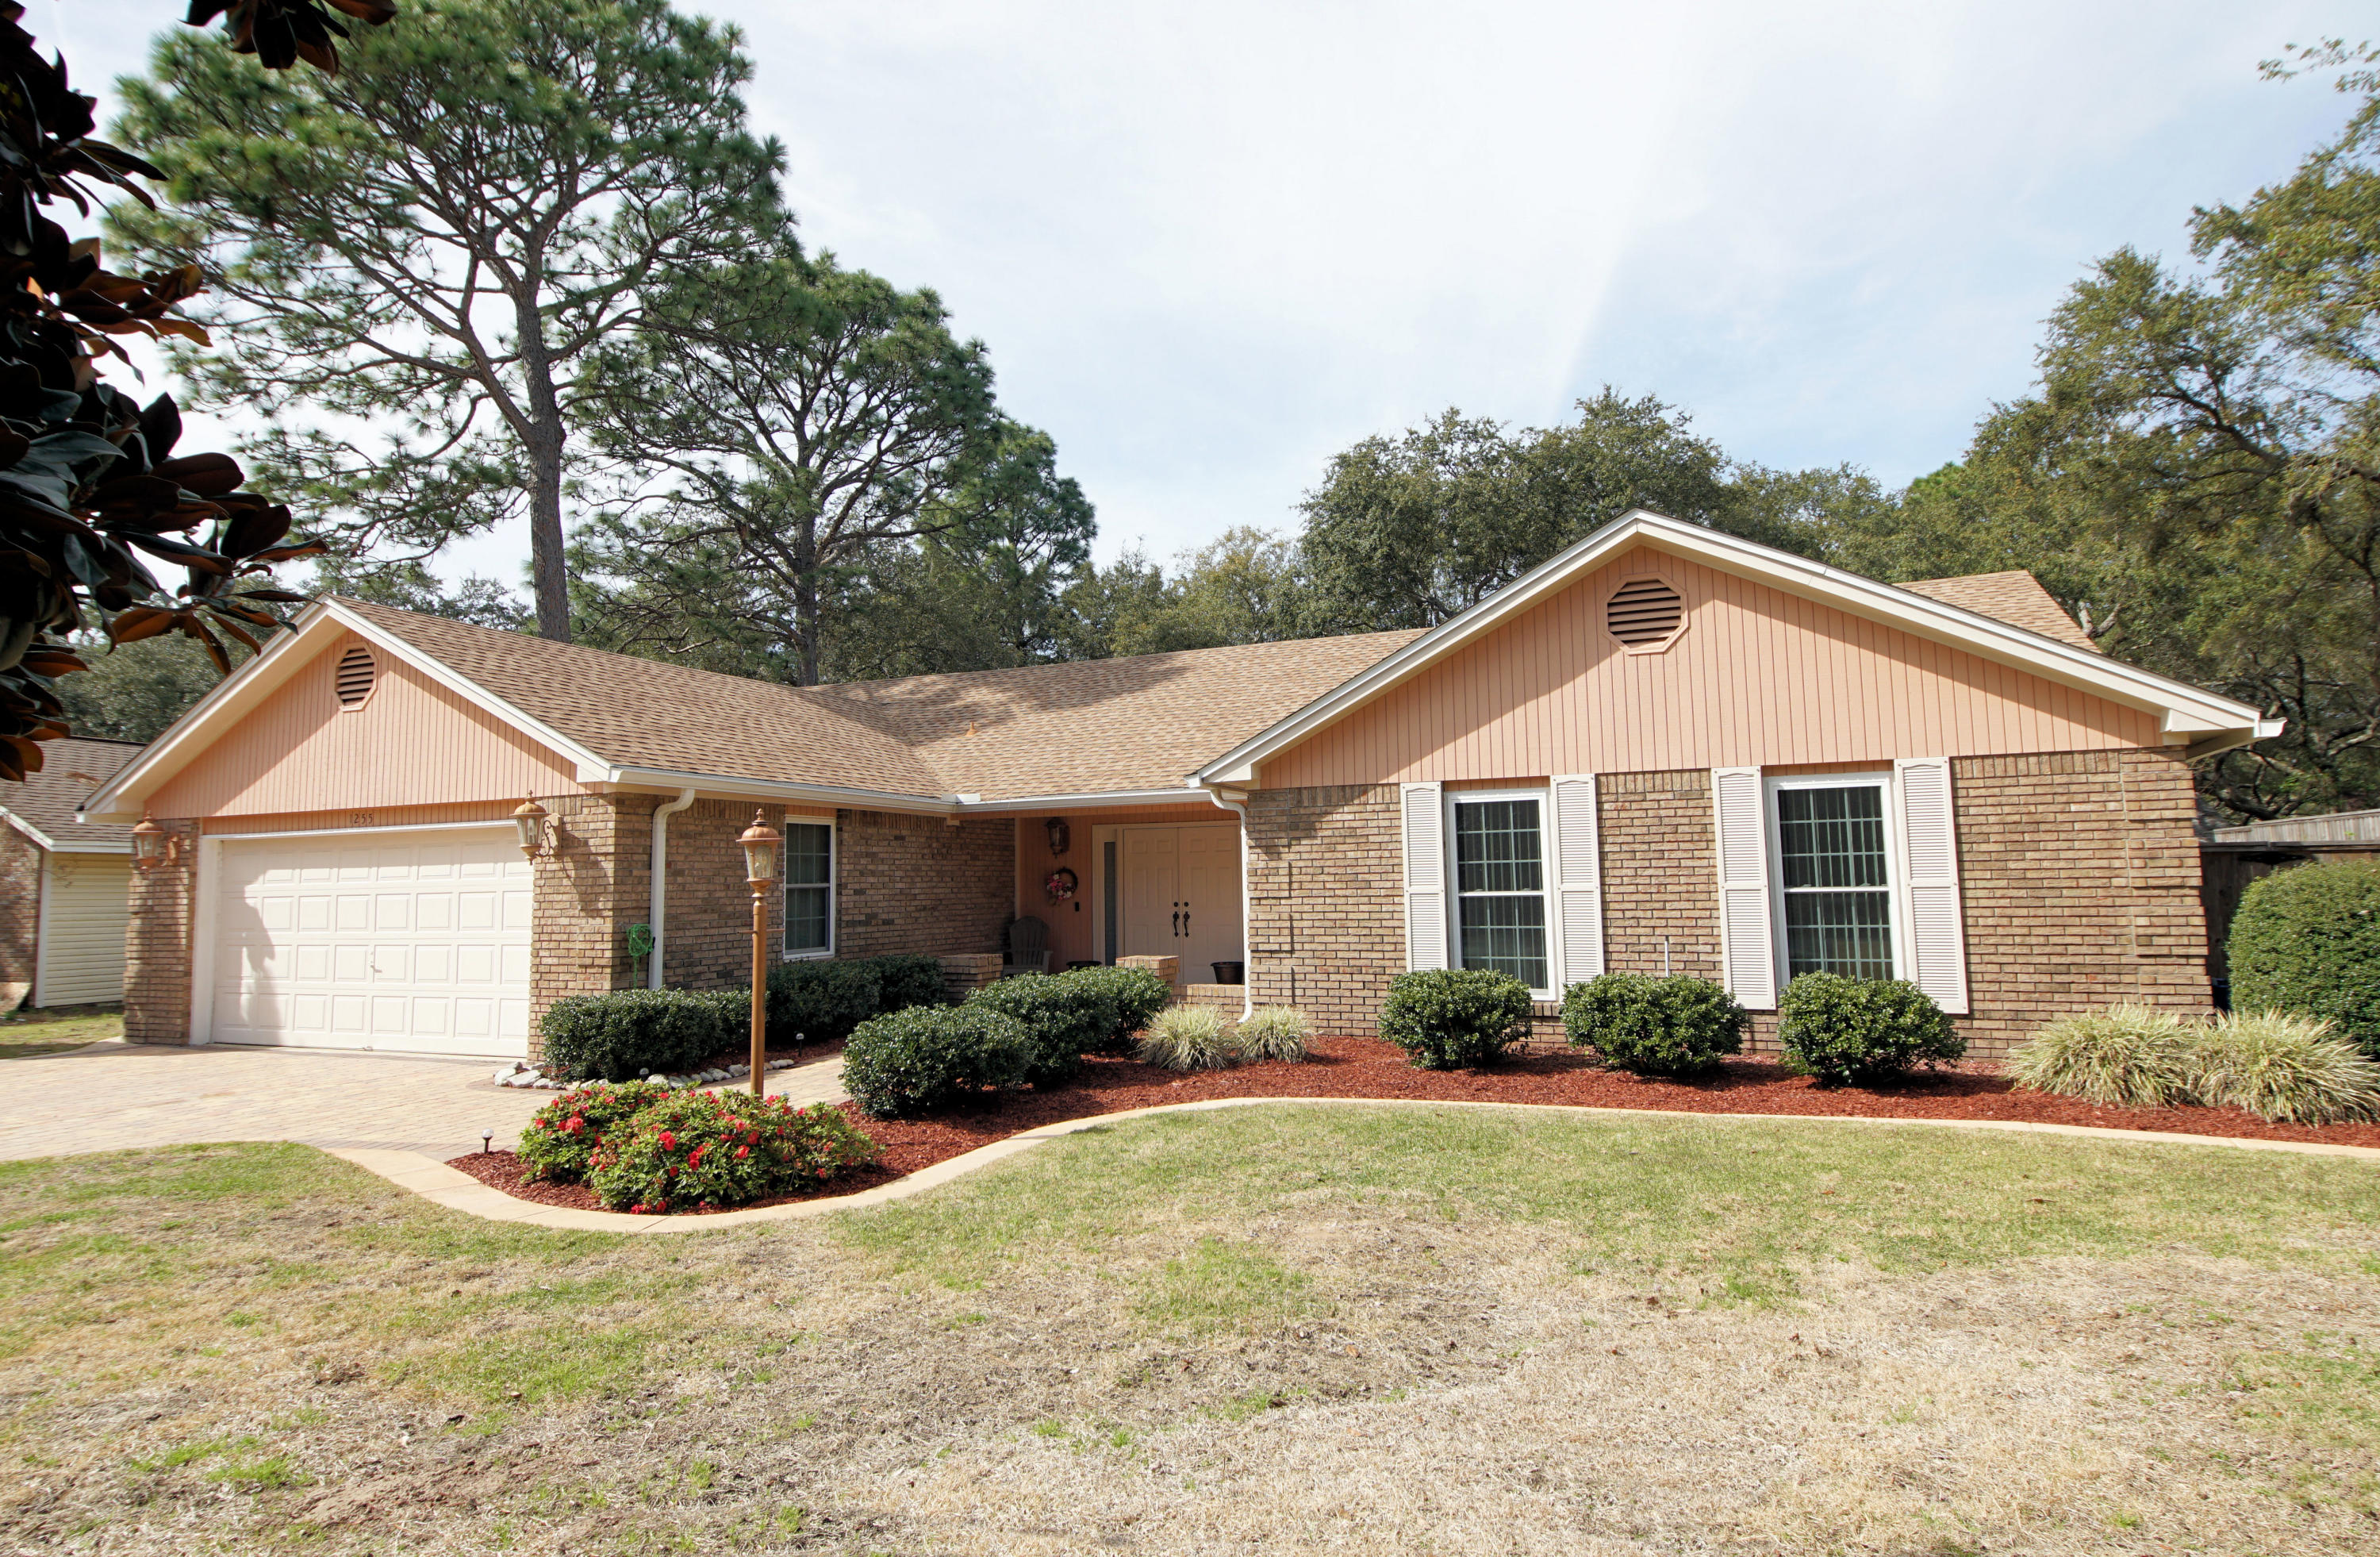 1255  Whitewood Way, Niceville in Okaloosa County, FL 32578 Home for Sale